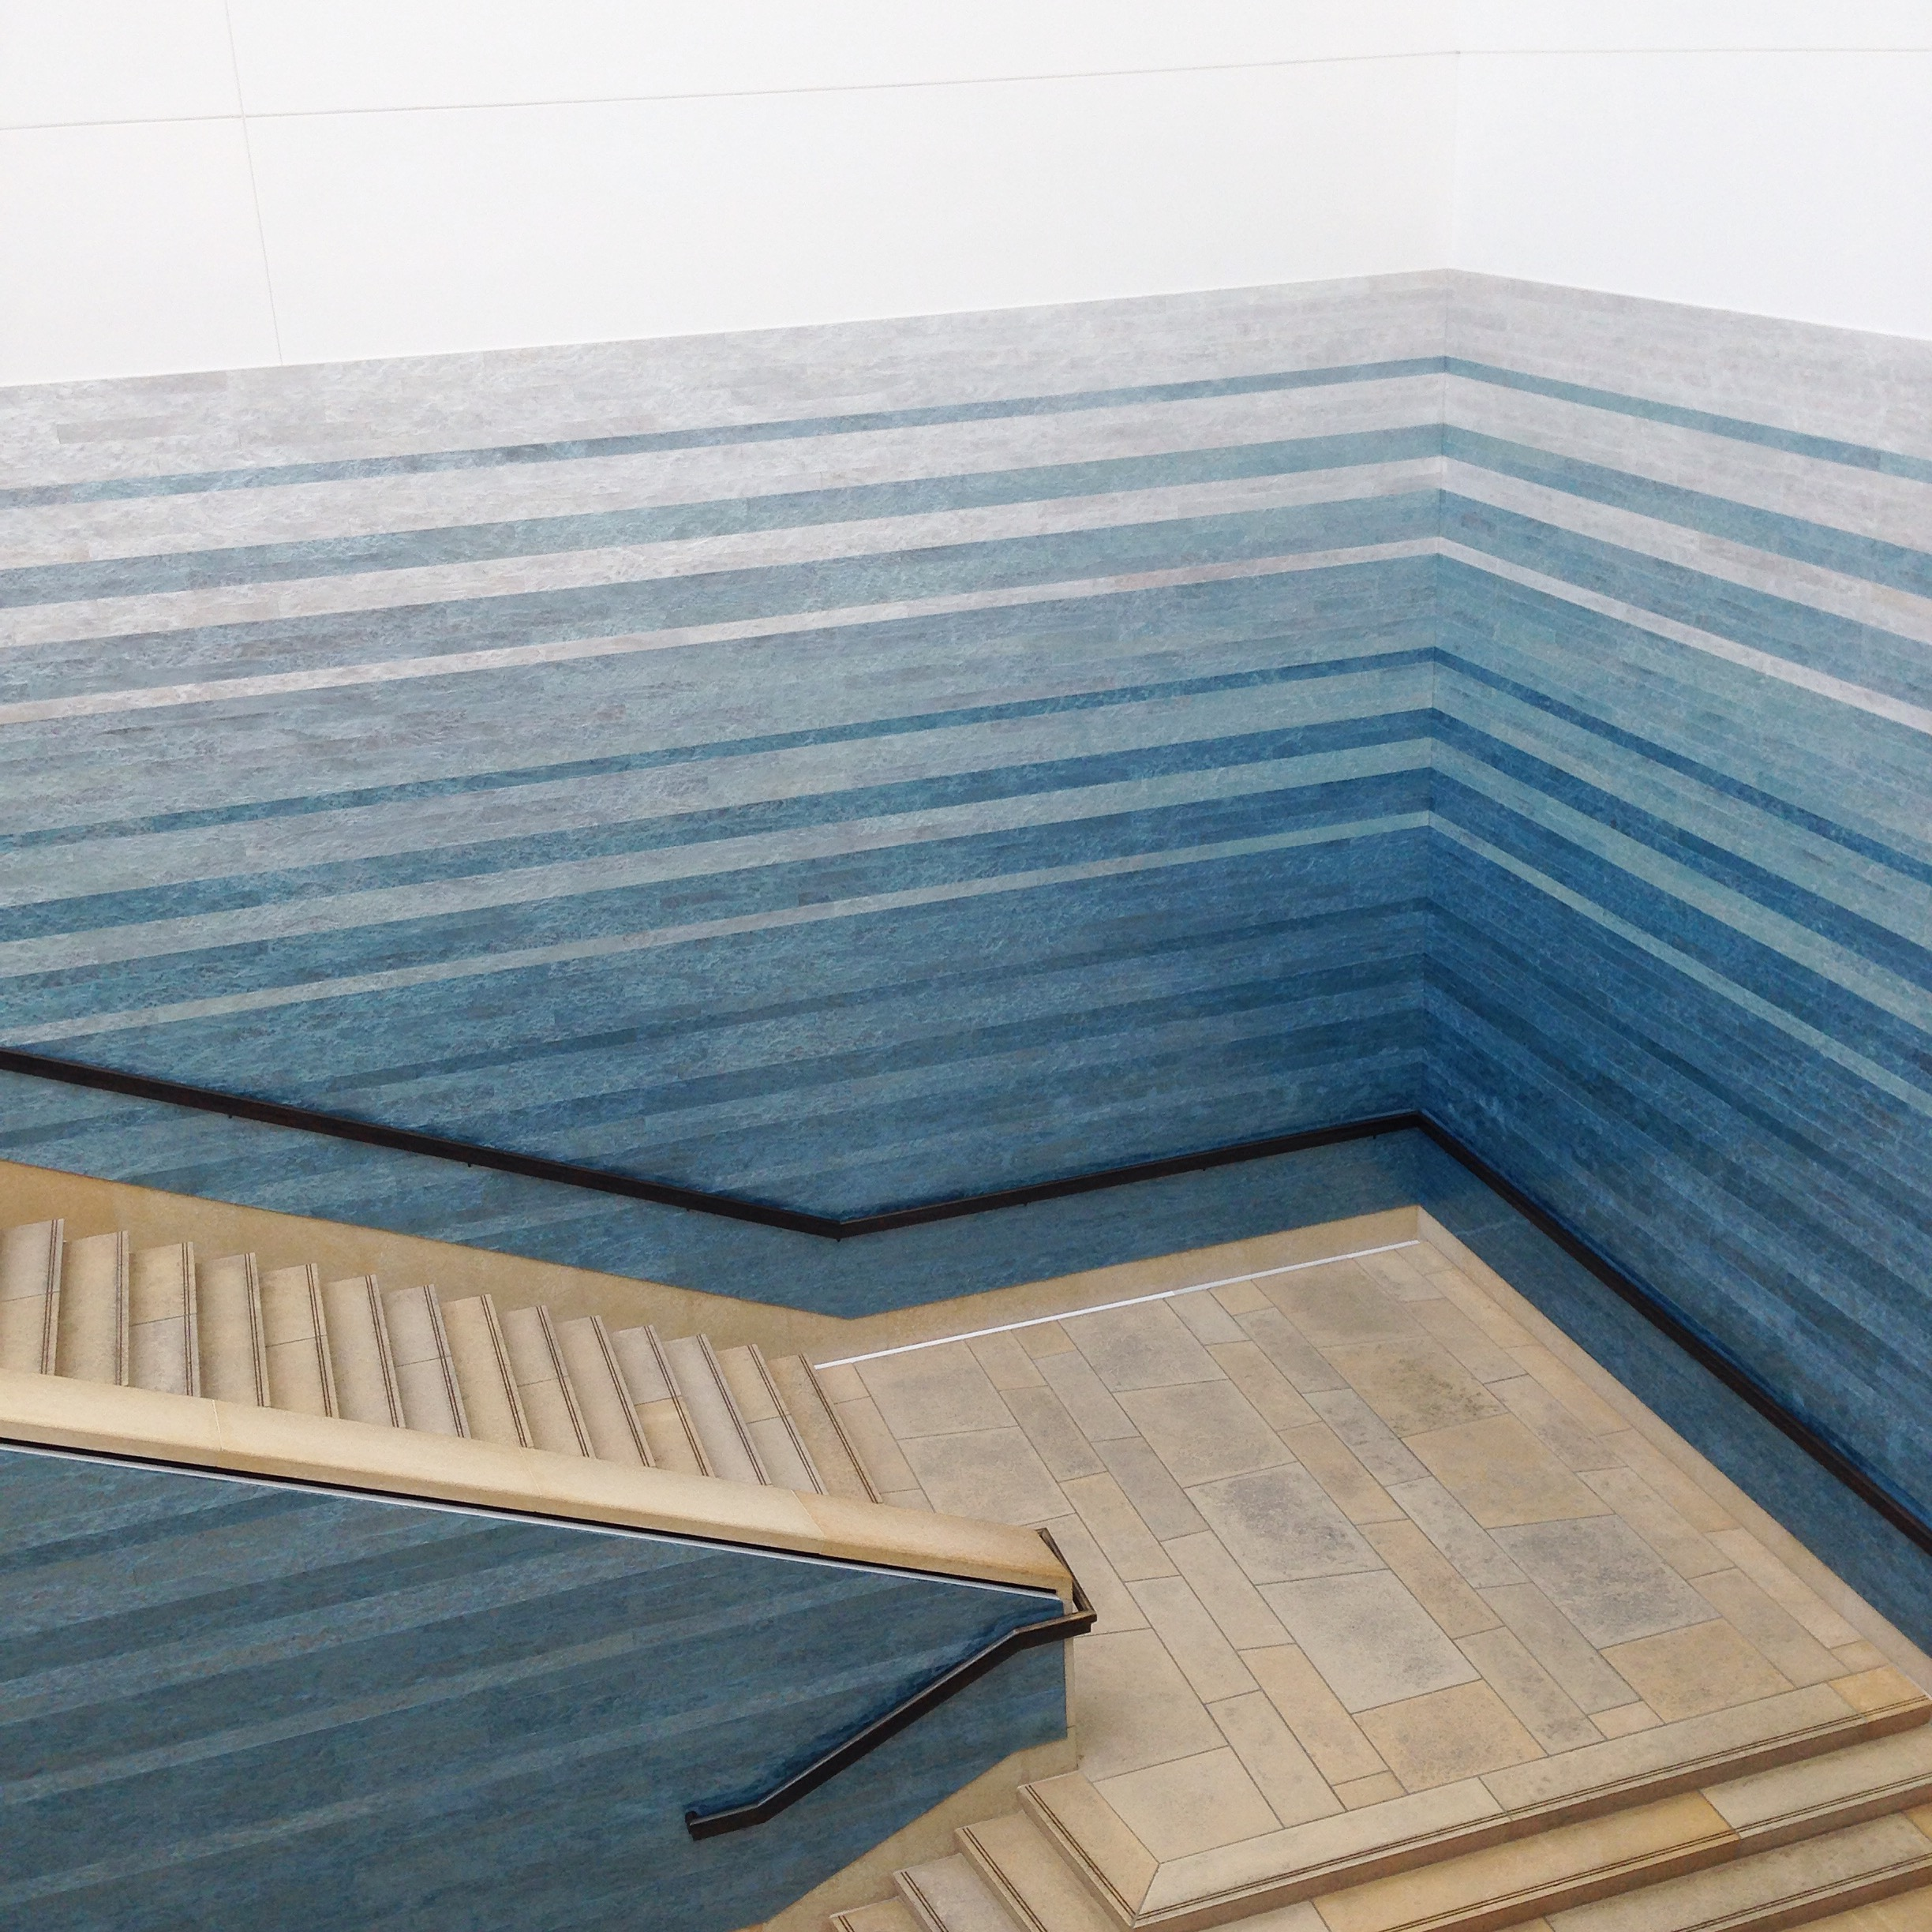 Teresita Fernández's Stacked Waters 2